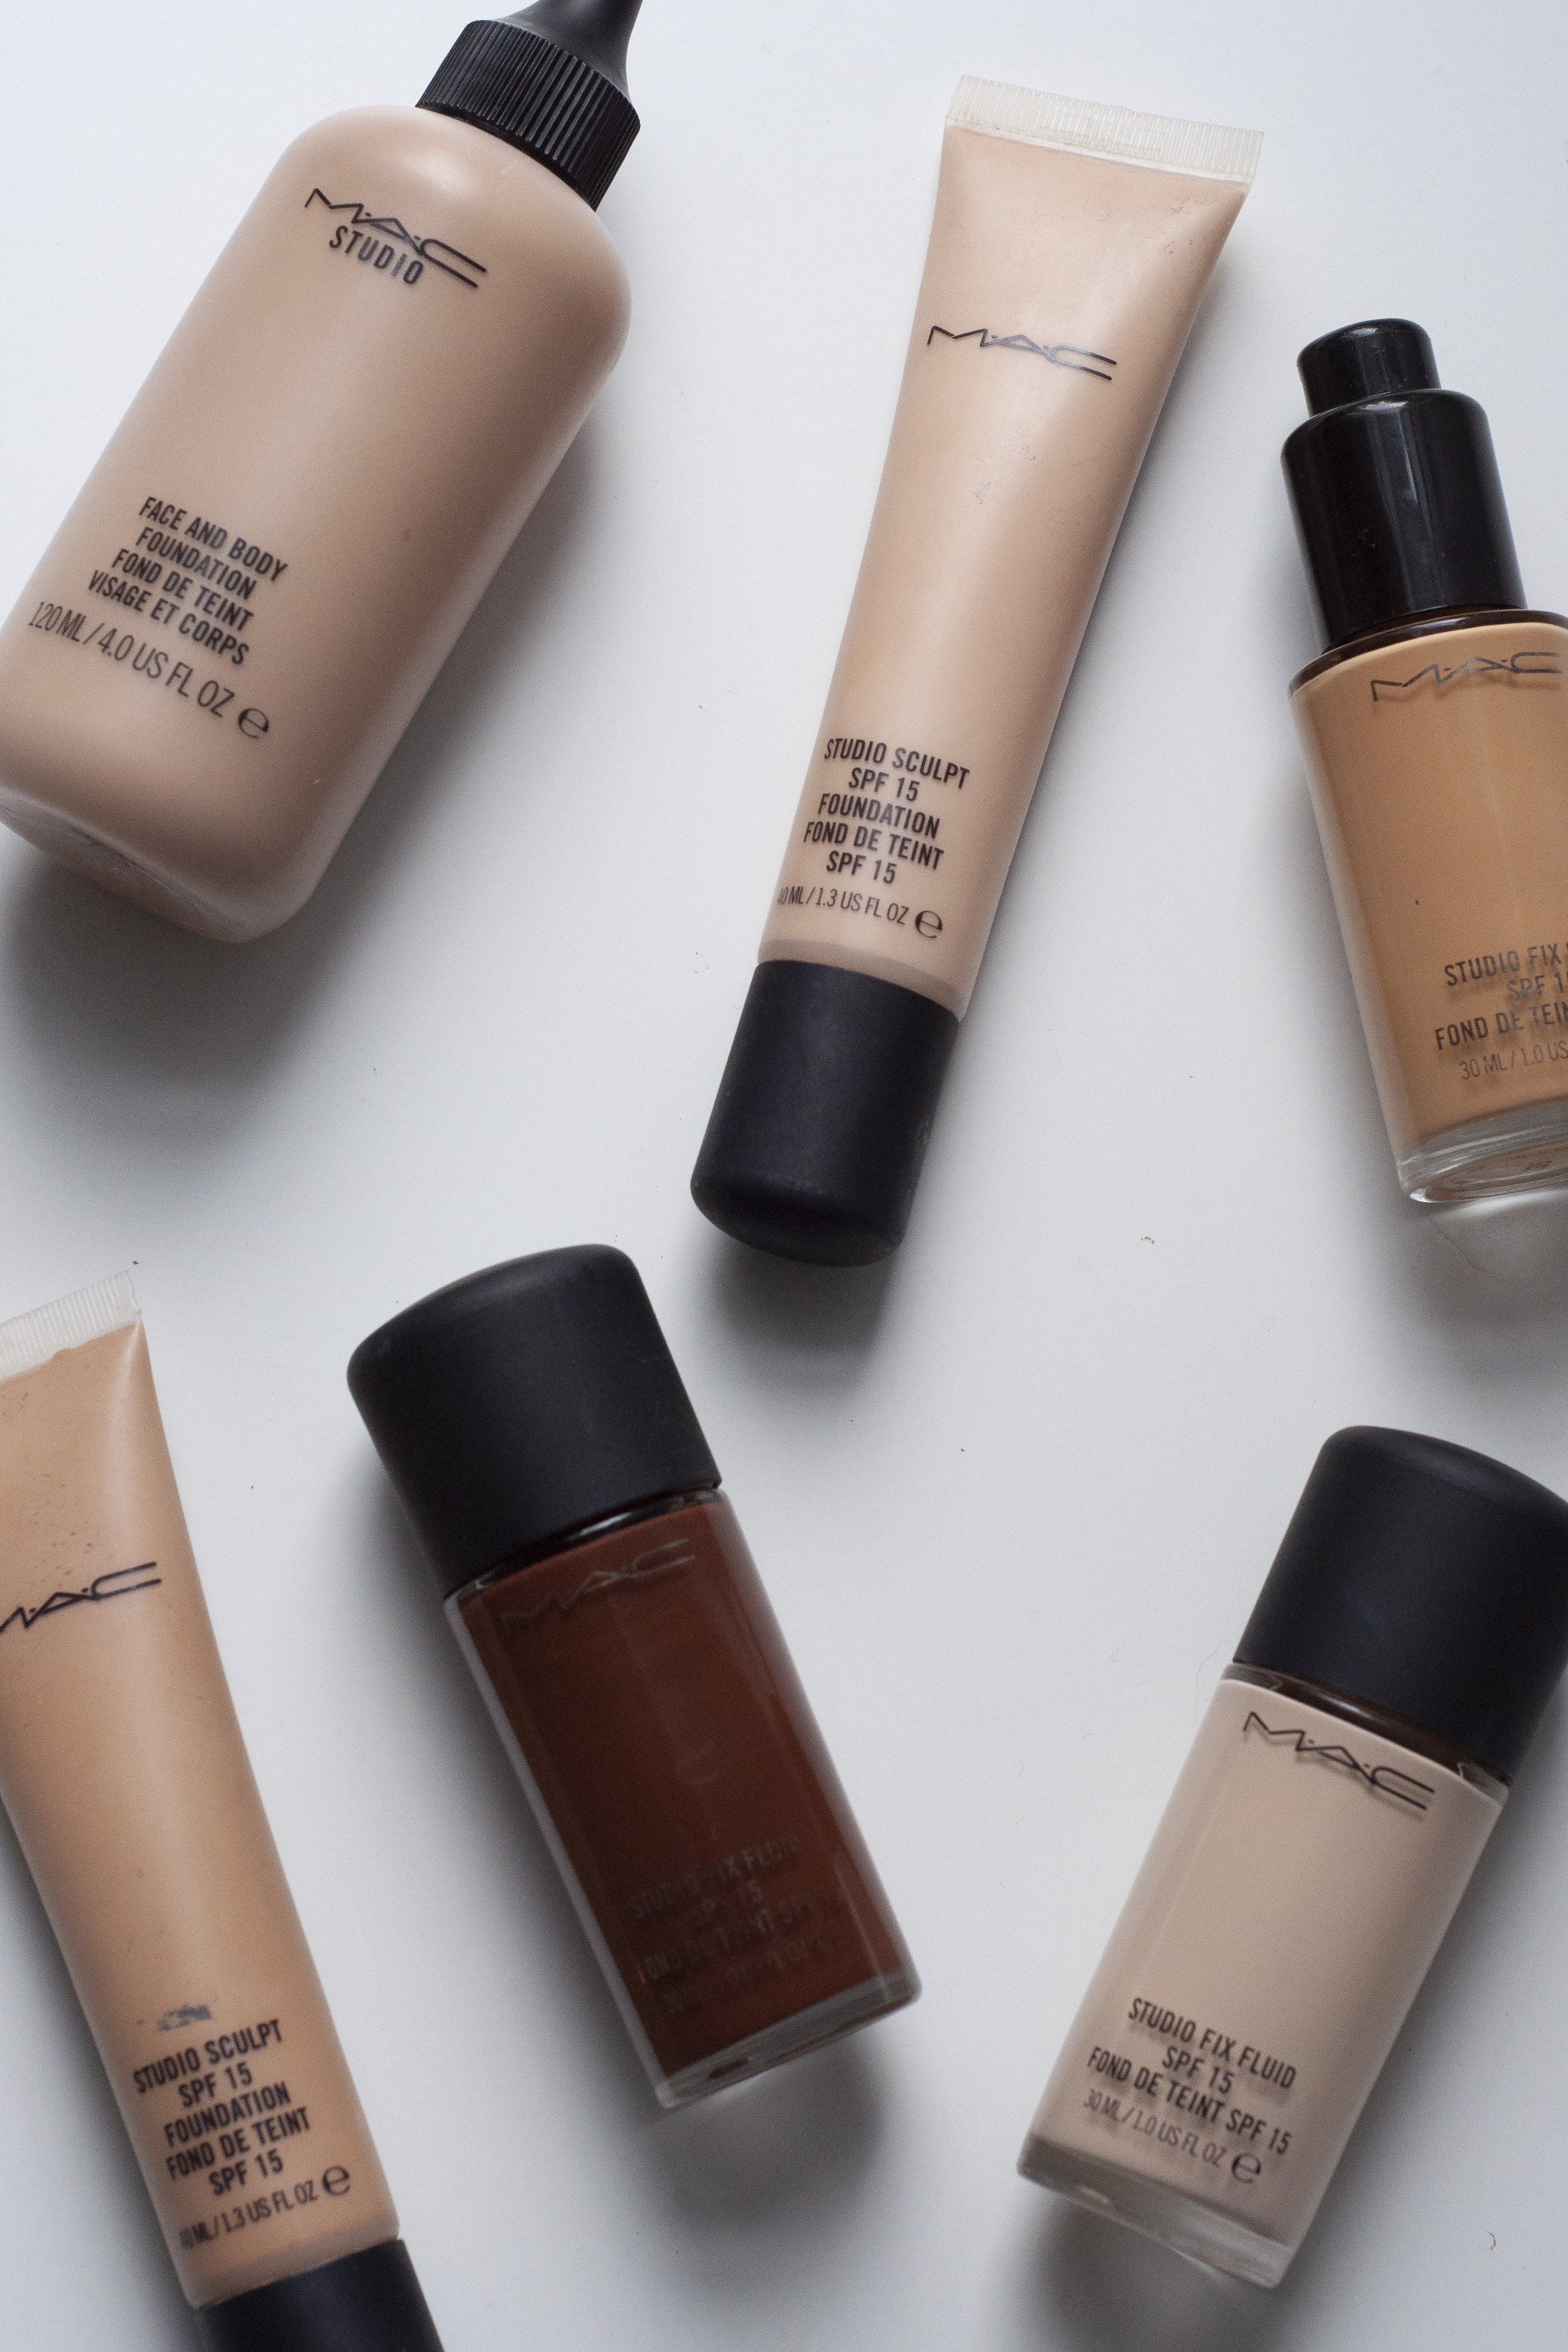 Foundations in a range of shades